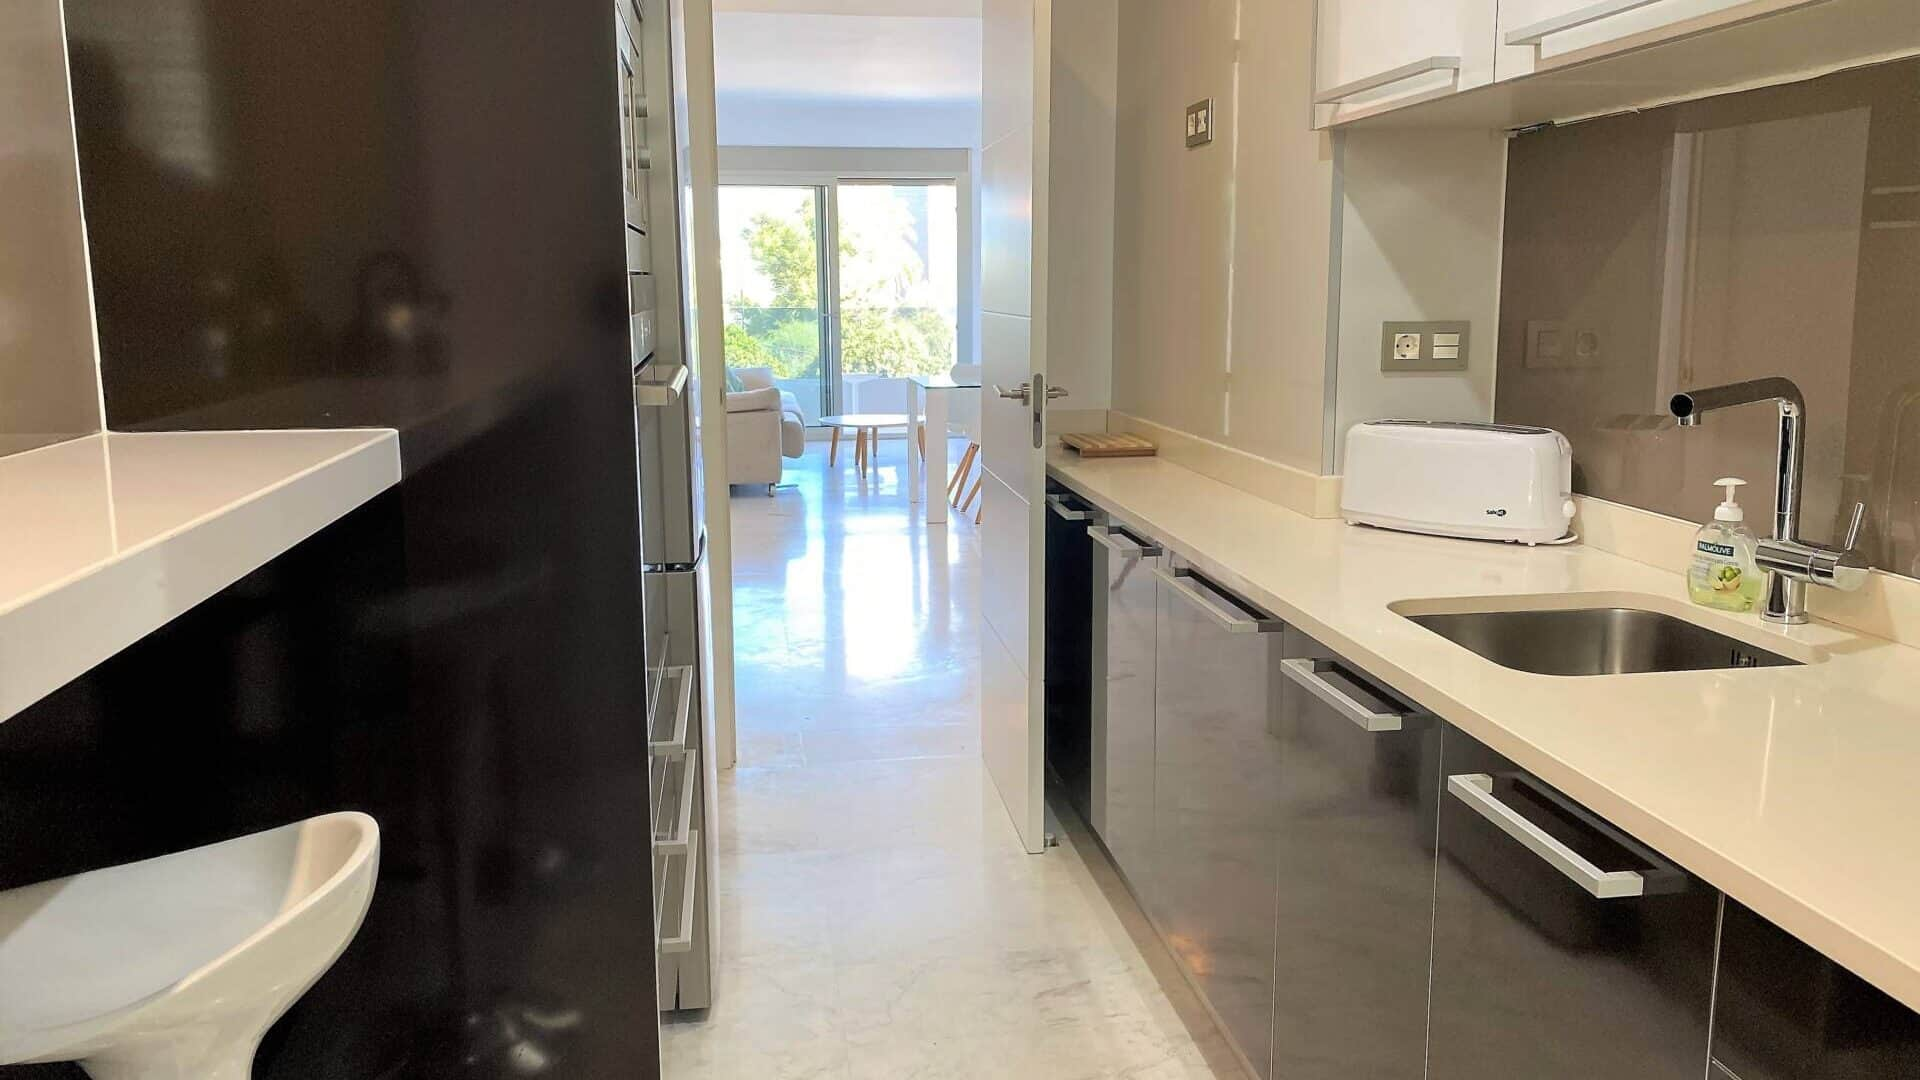 Royal Beach Ibiza 2 bedroom apartment for rent